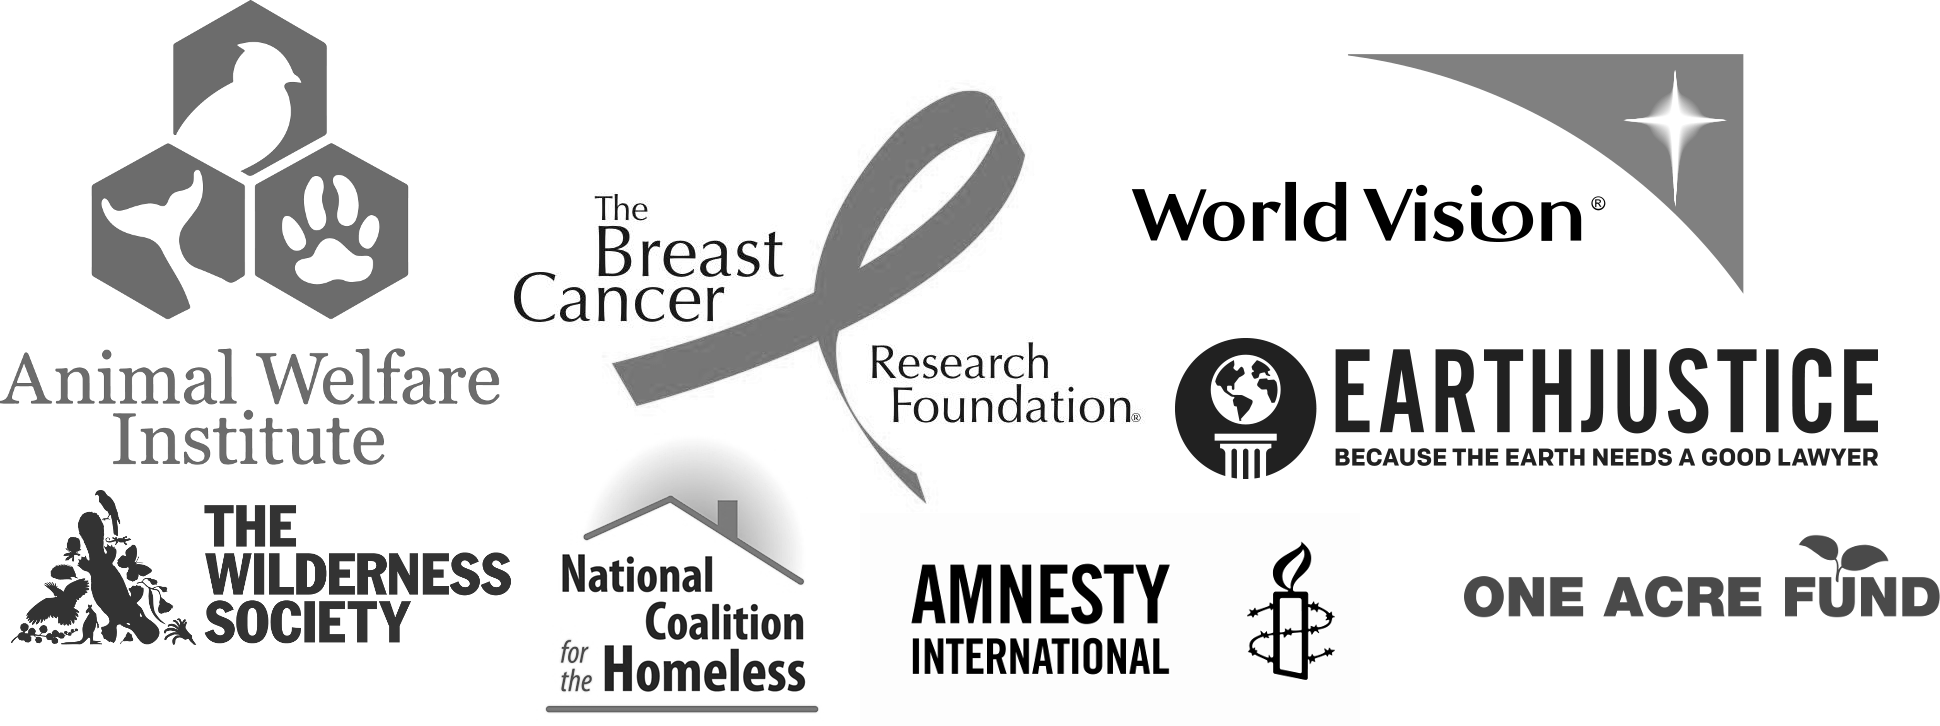 Charities we support. We provide free coaching but encourage you contribute to your favorite charity